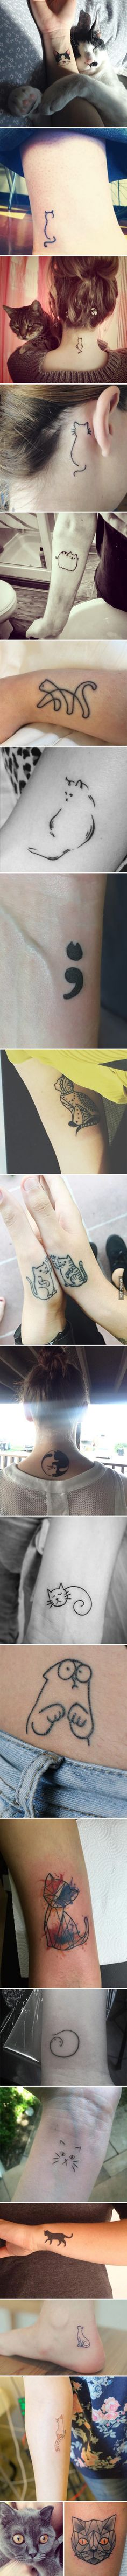 """20 Minimalistic """"Cattoos"""" For Cat Lovers"""